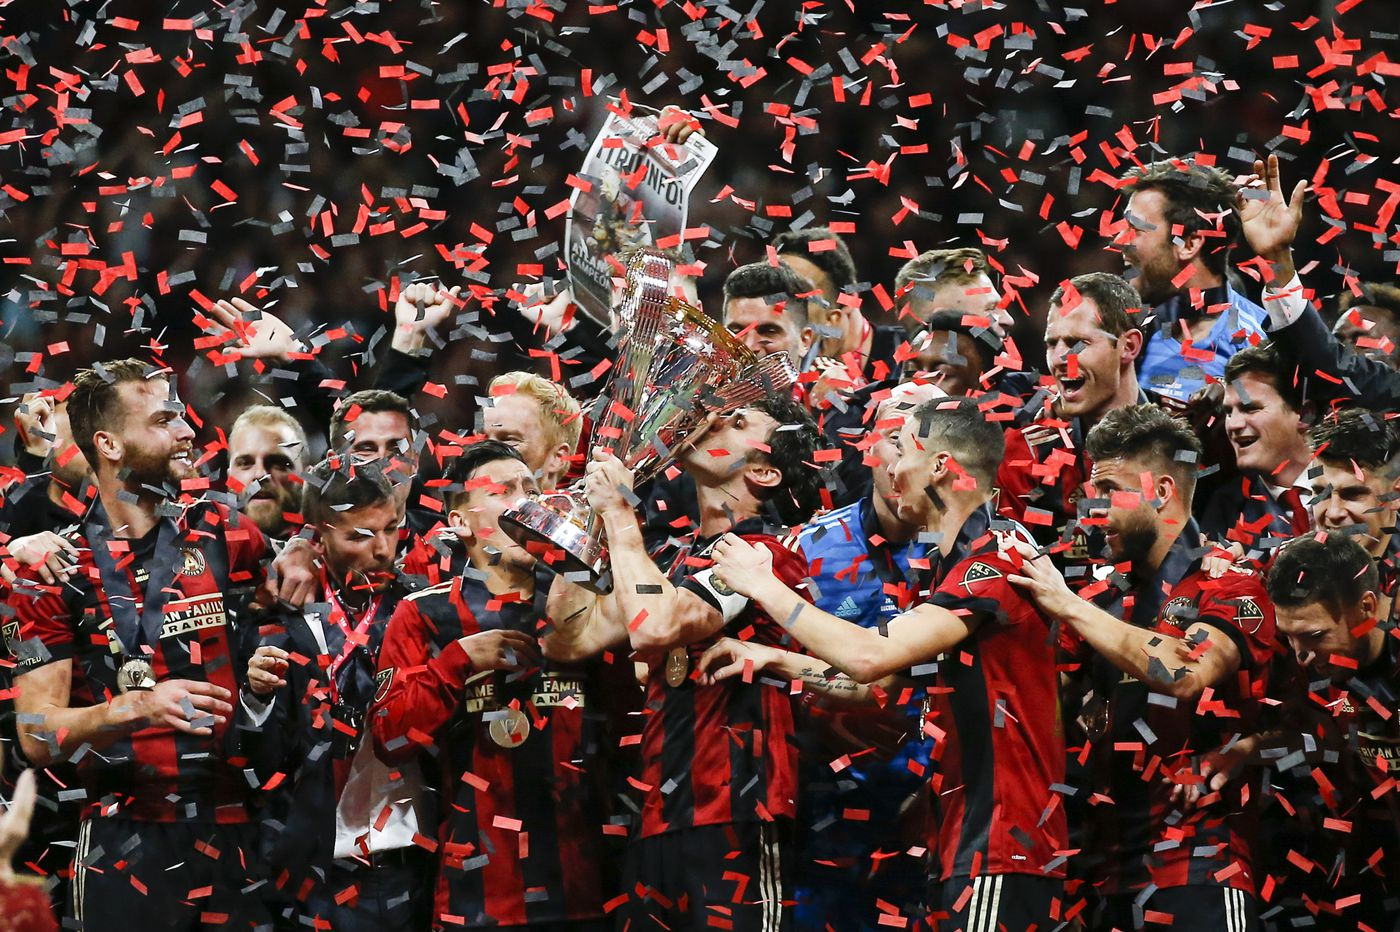 Atlanta United beats Portland Timbers in MLS Cup, wins city's first sports title since '95